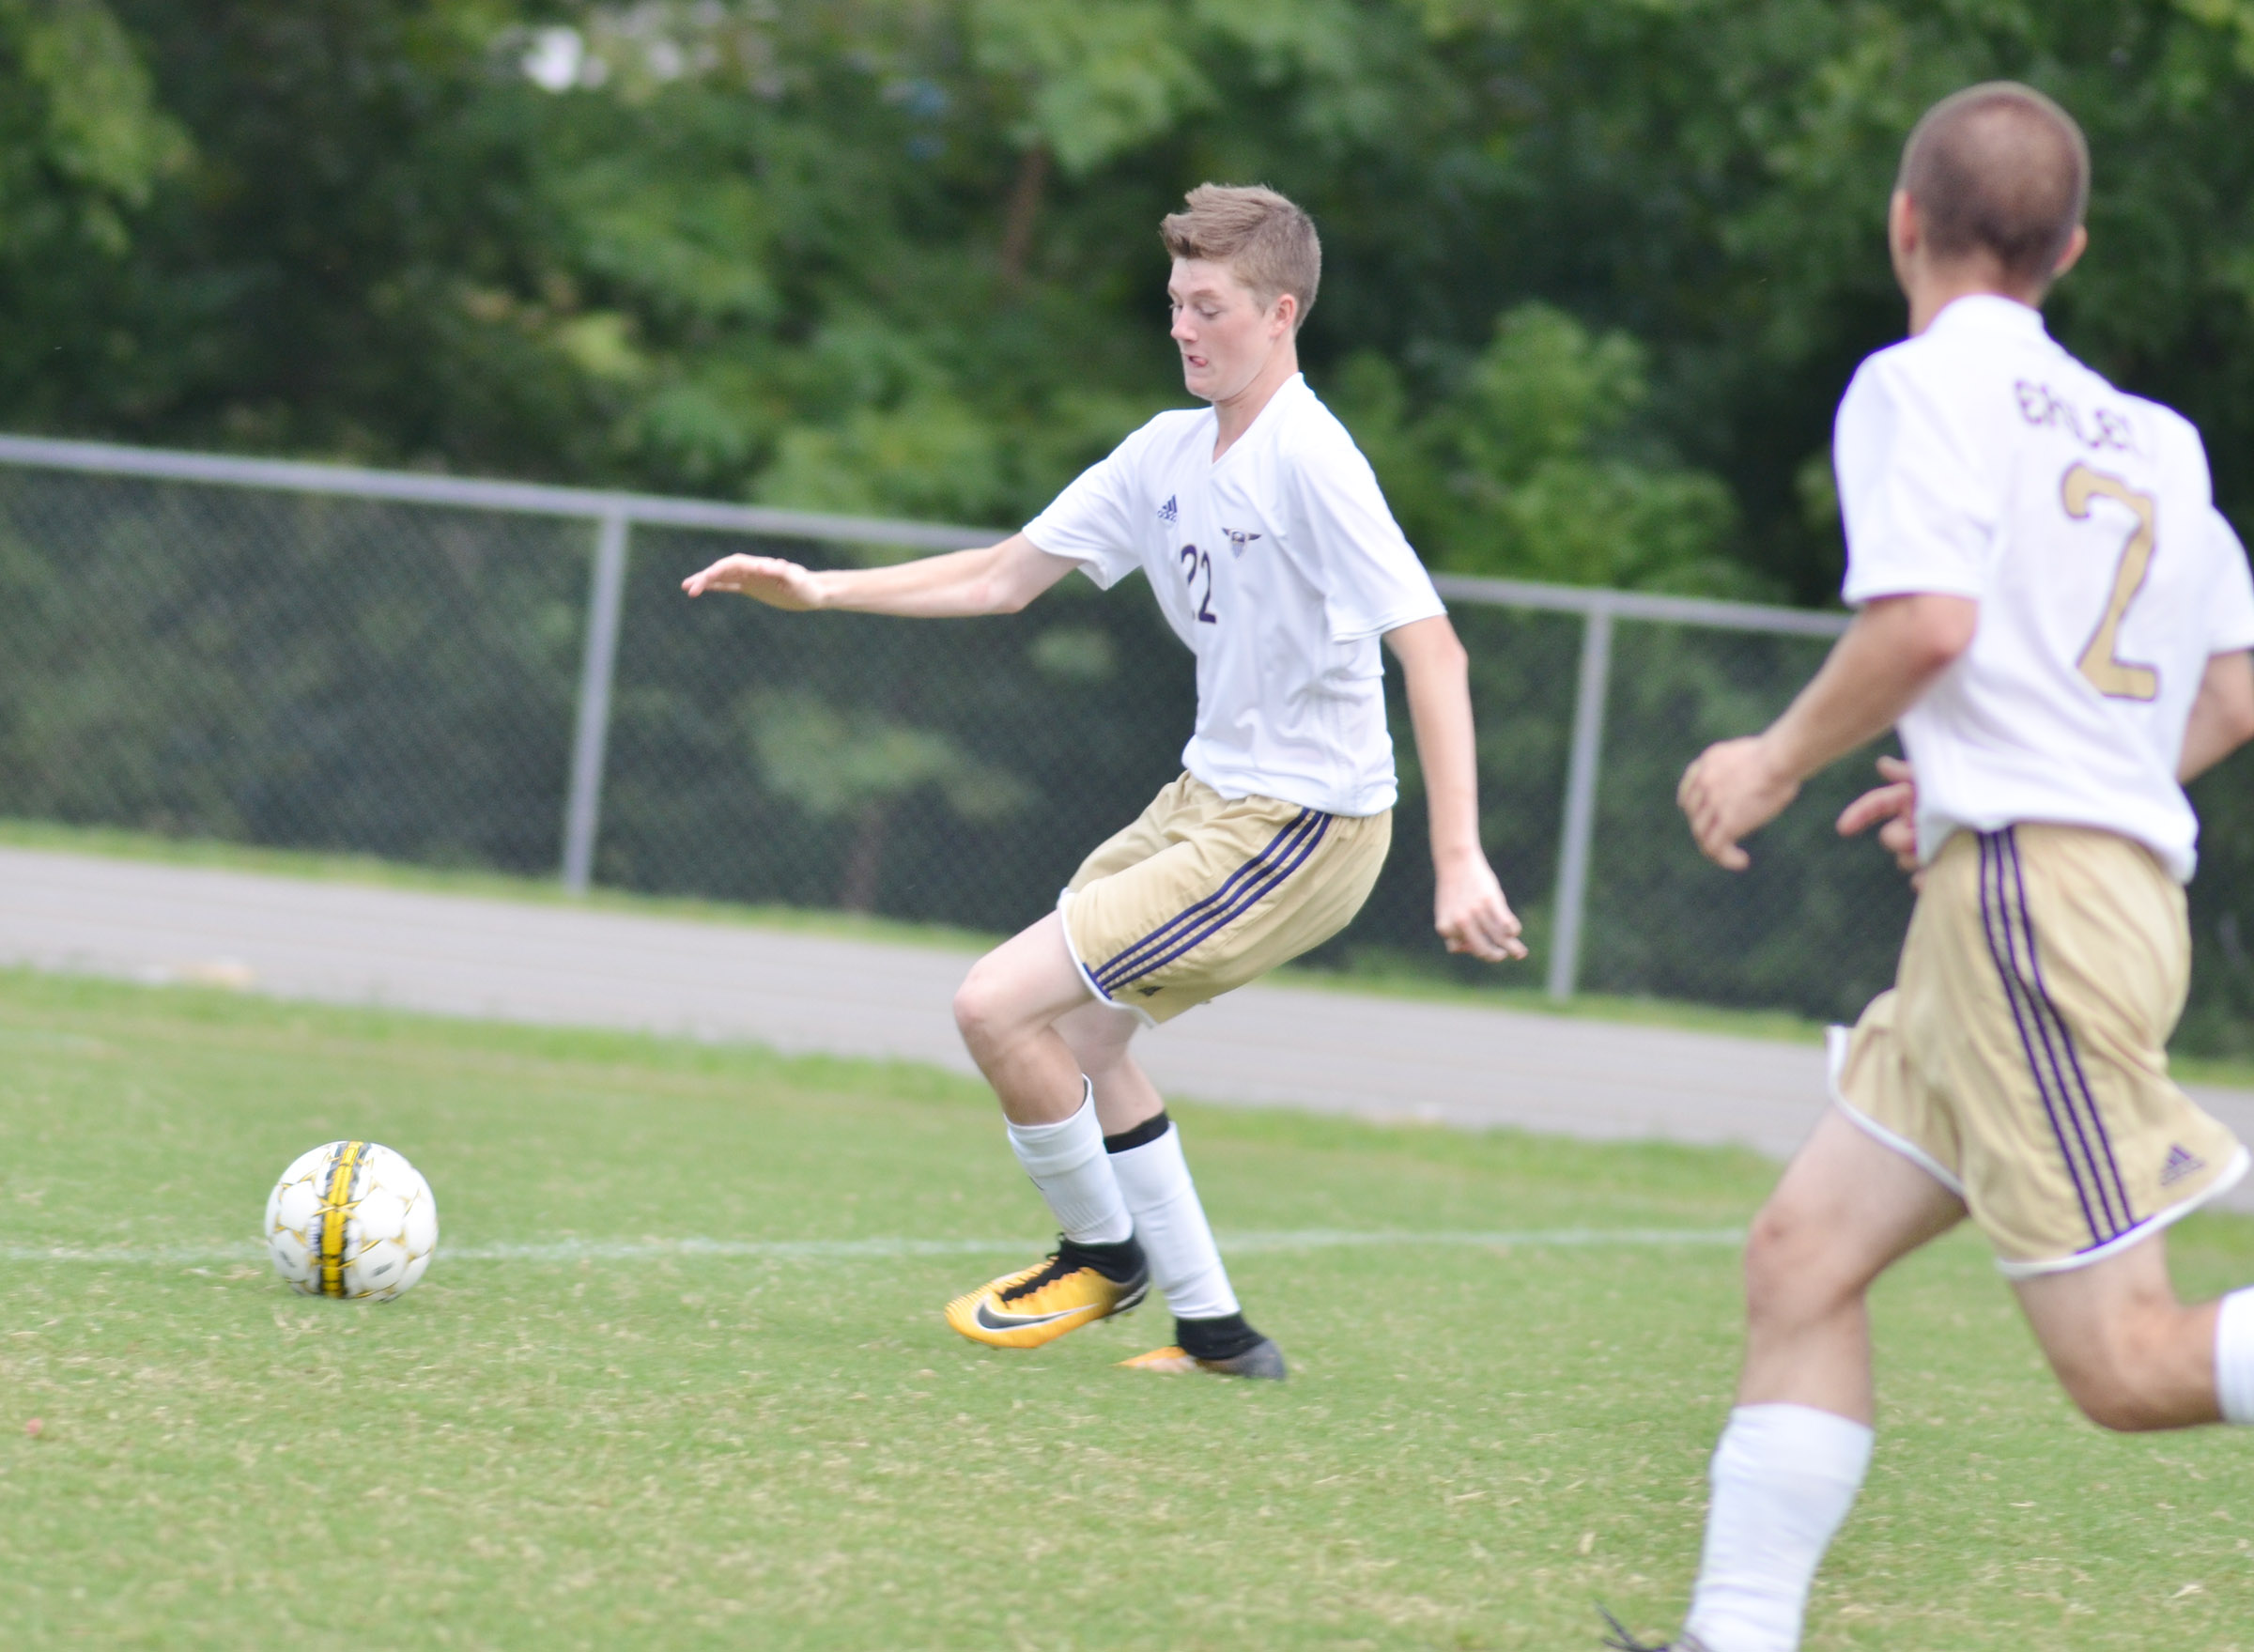 CHS freshman Tristin Faulkner kicks the ball.